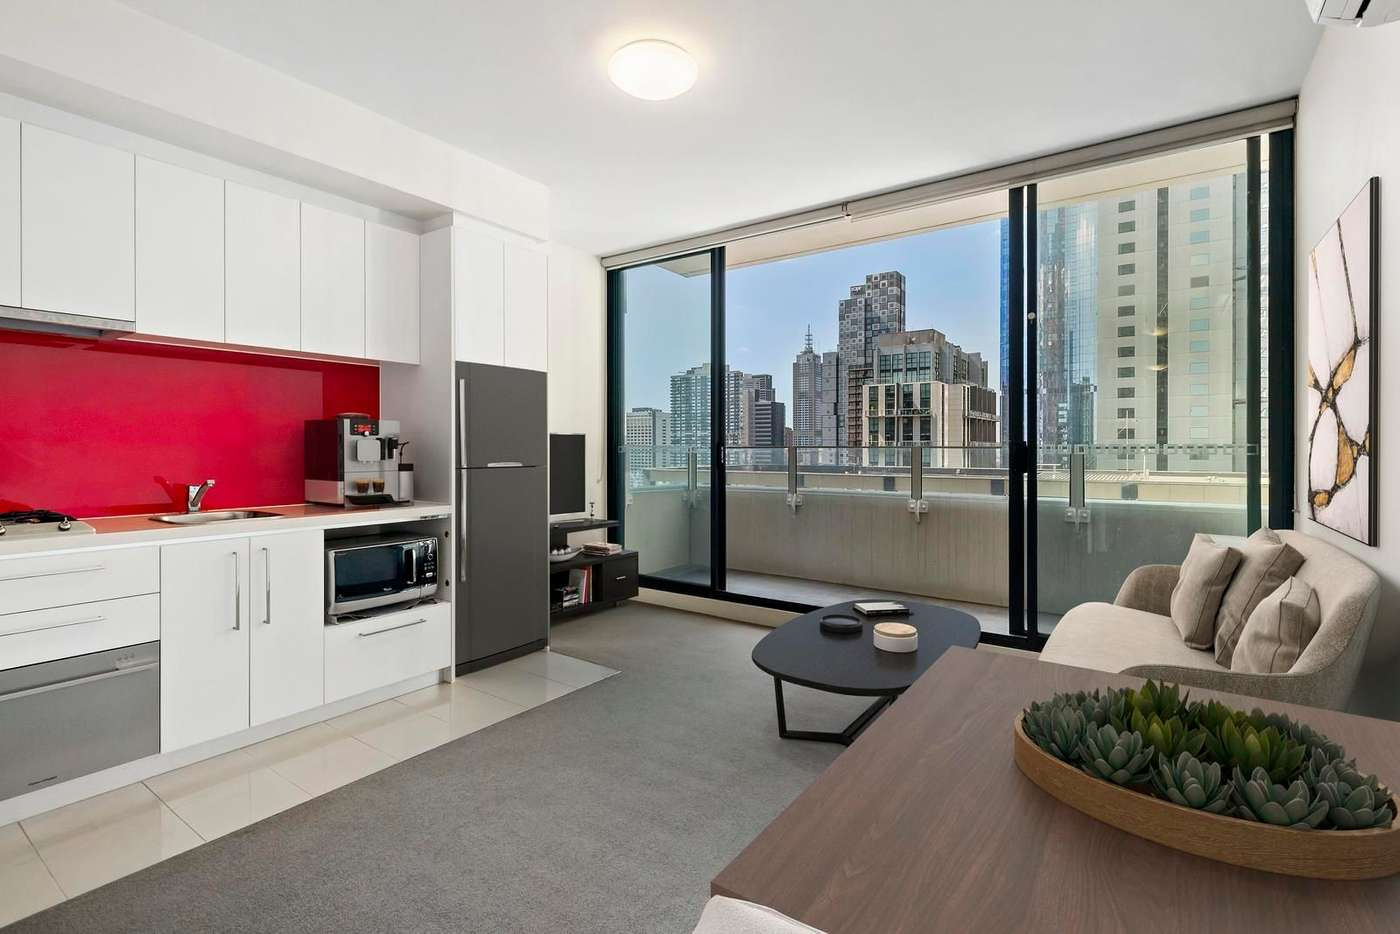 Main view of Homely apartment listing, 2012/25 Therry Street, Melbourne VIC 3000